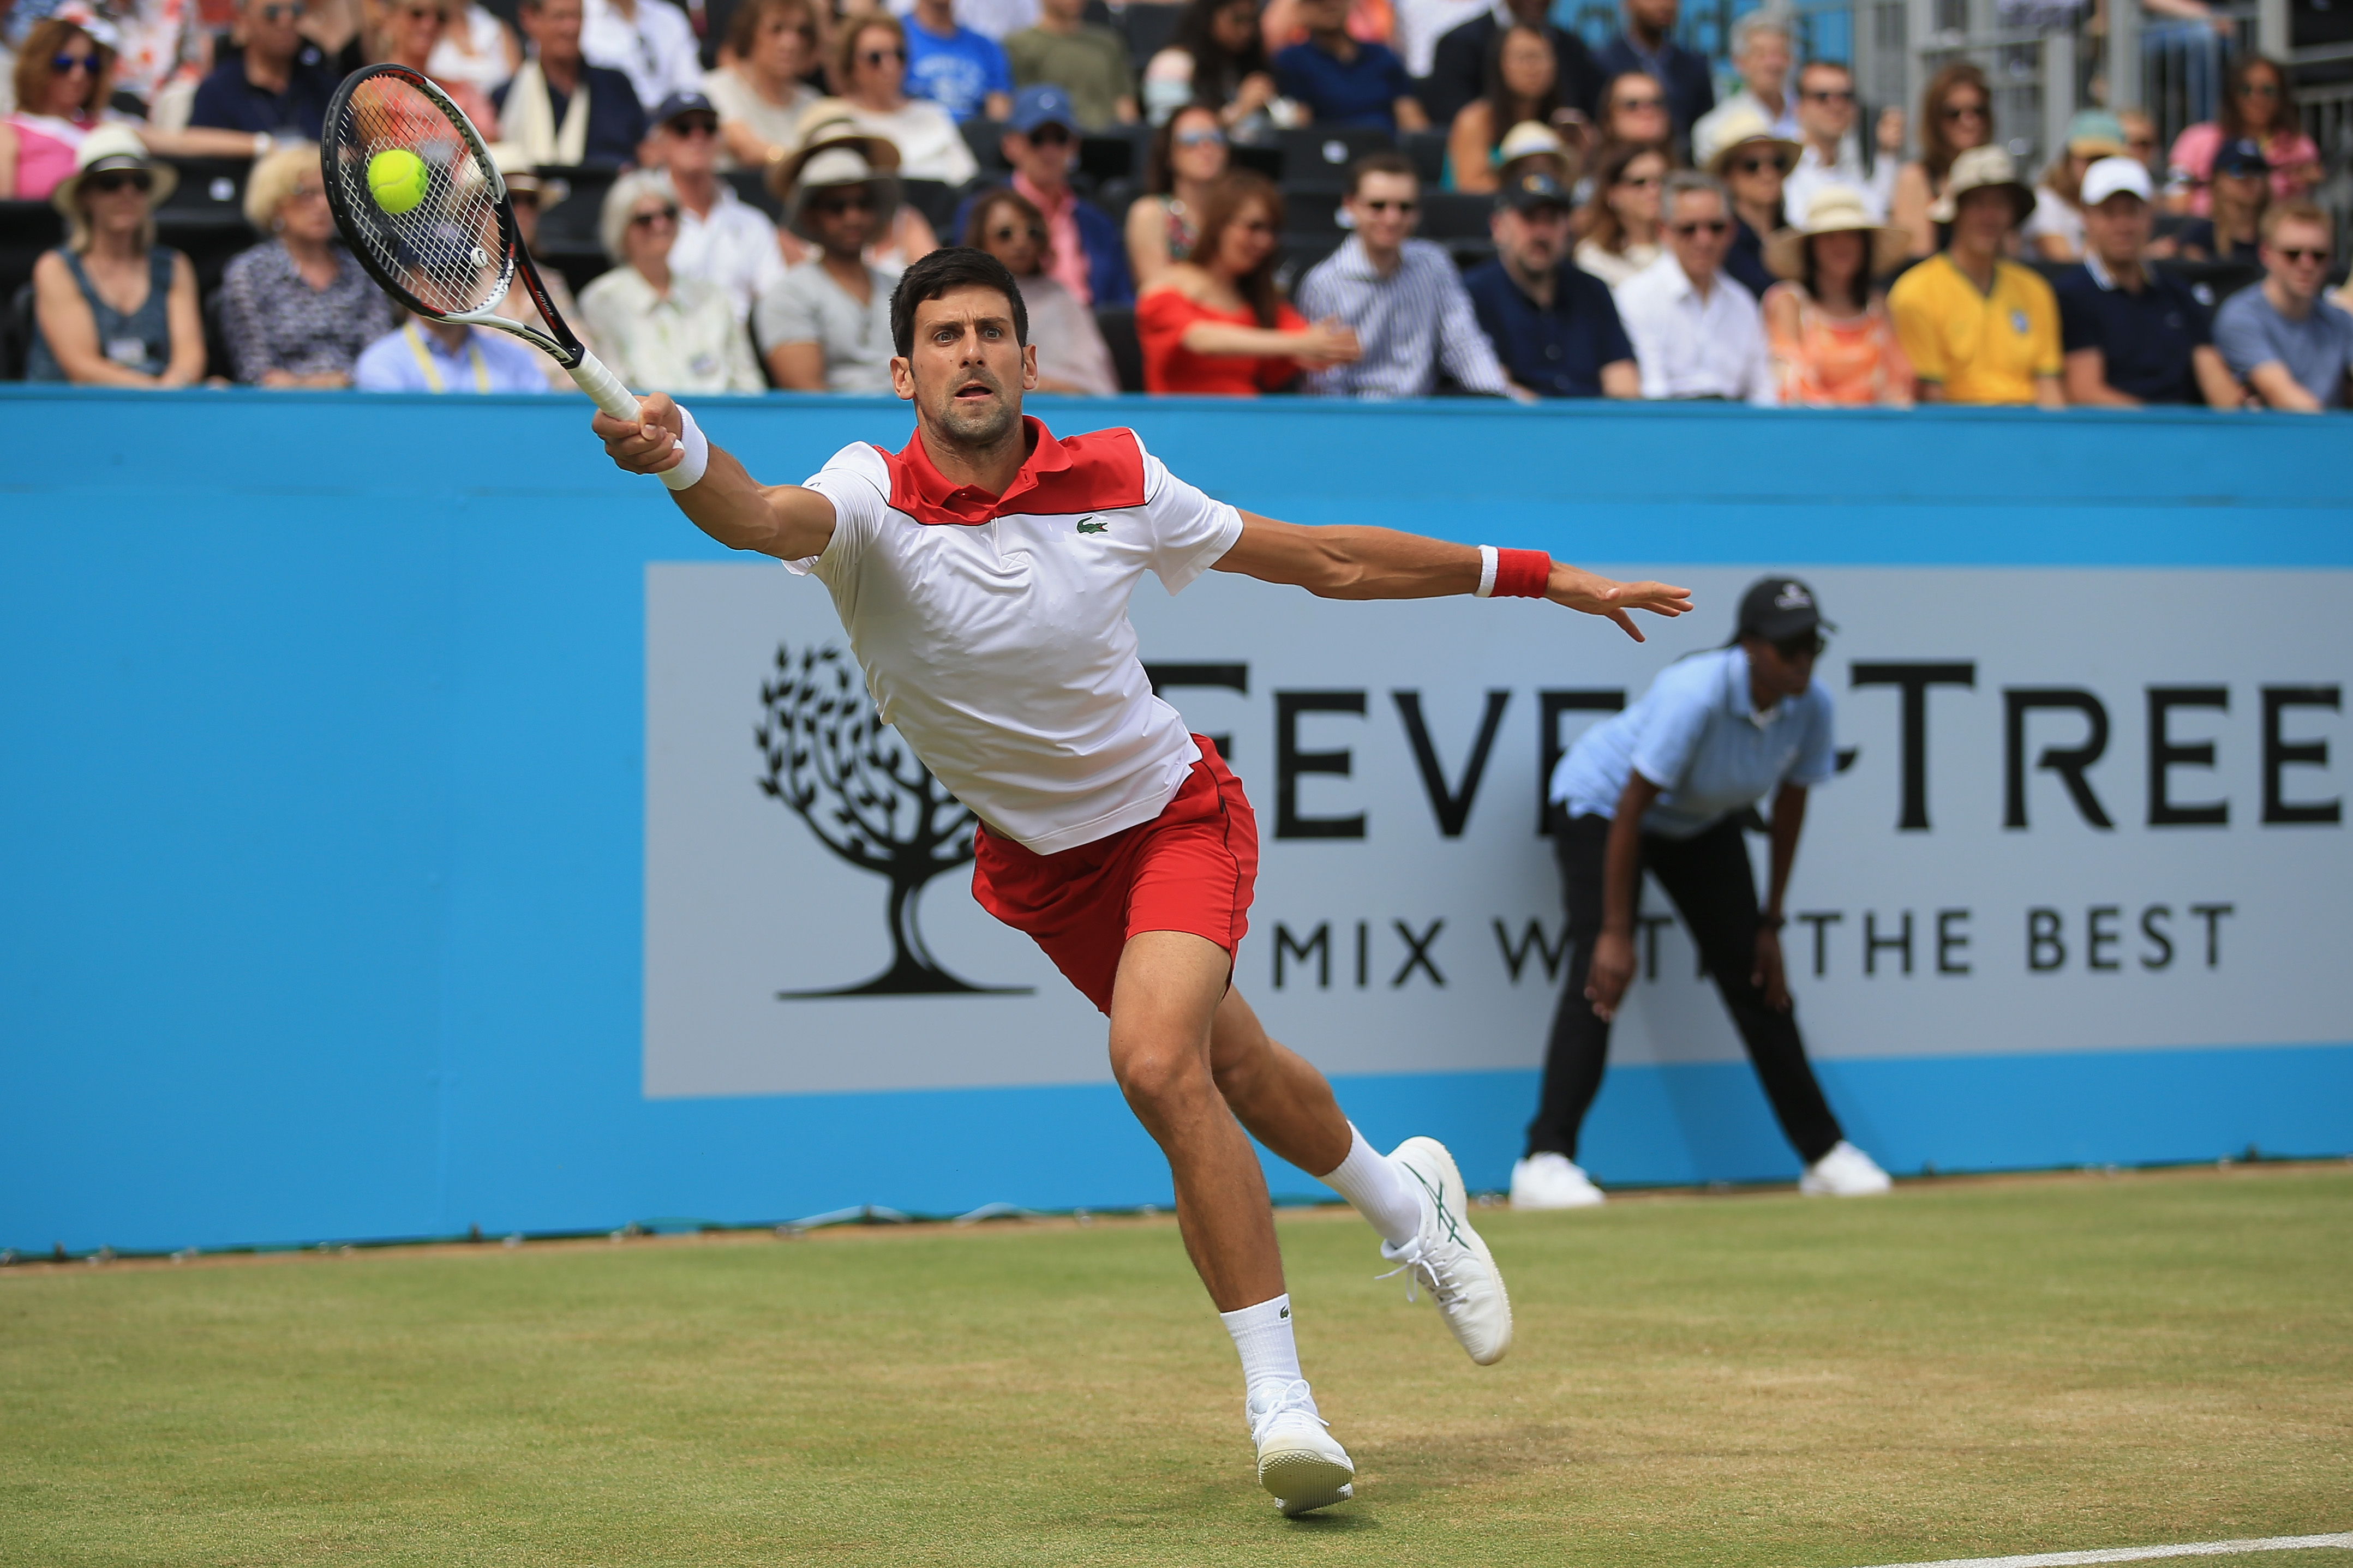 Novak Djokovic leaps for a forehand across the basline during the semi-finals